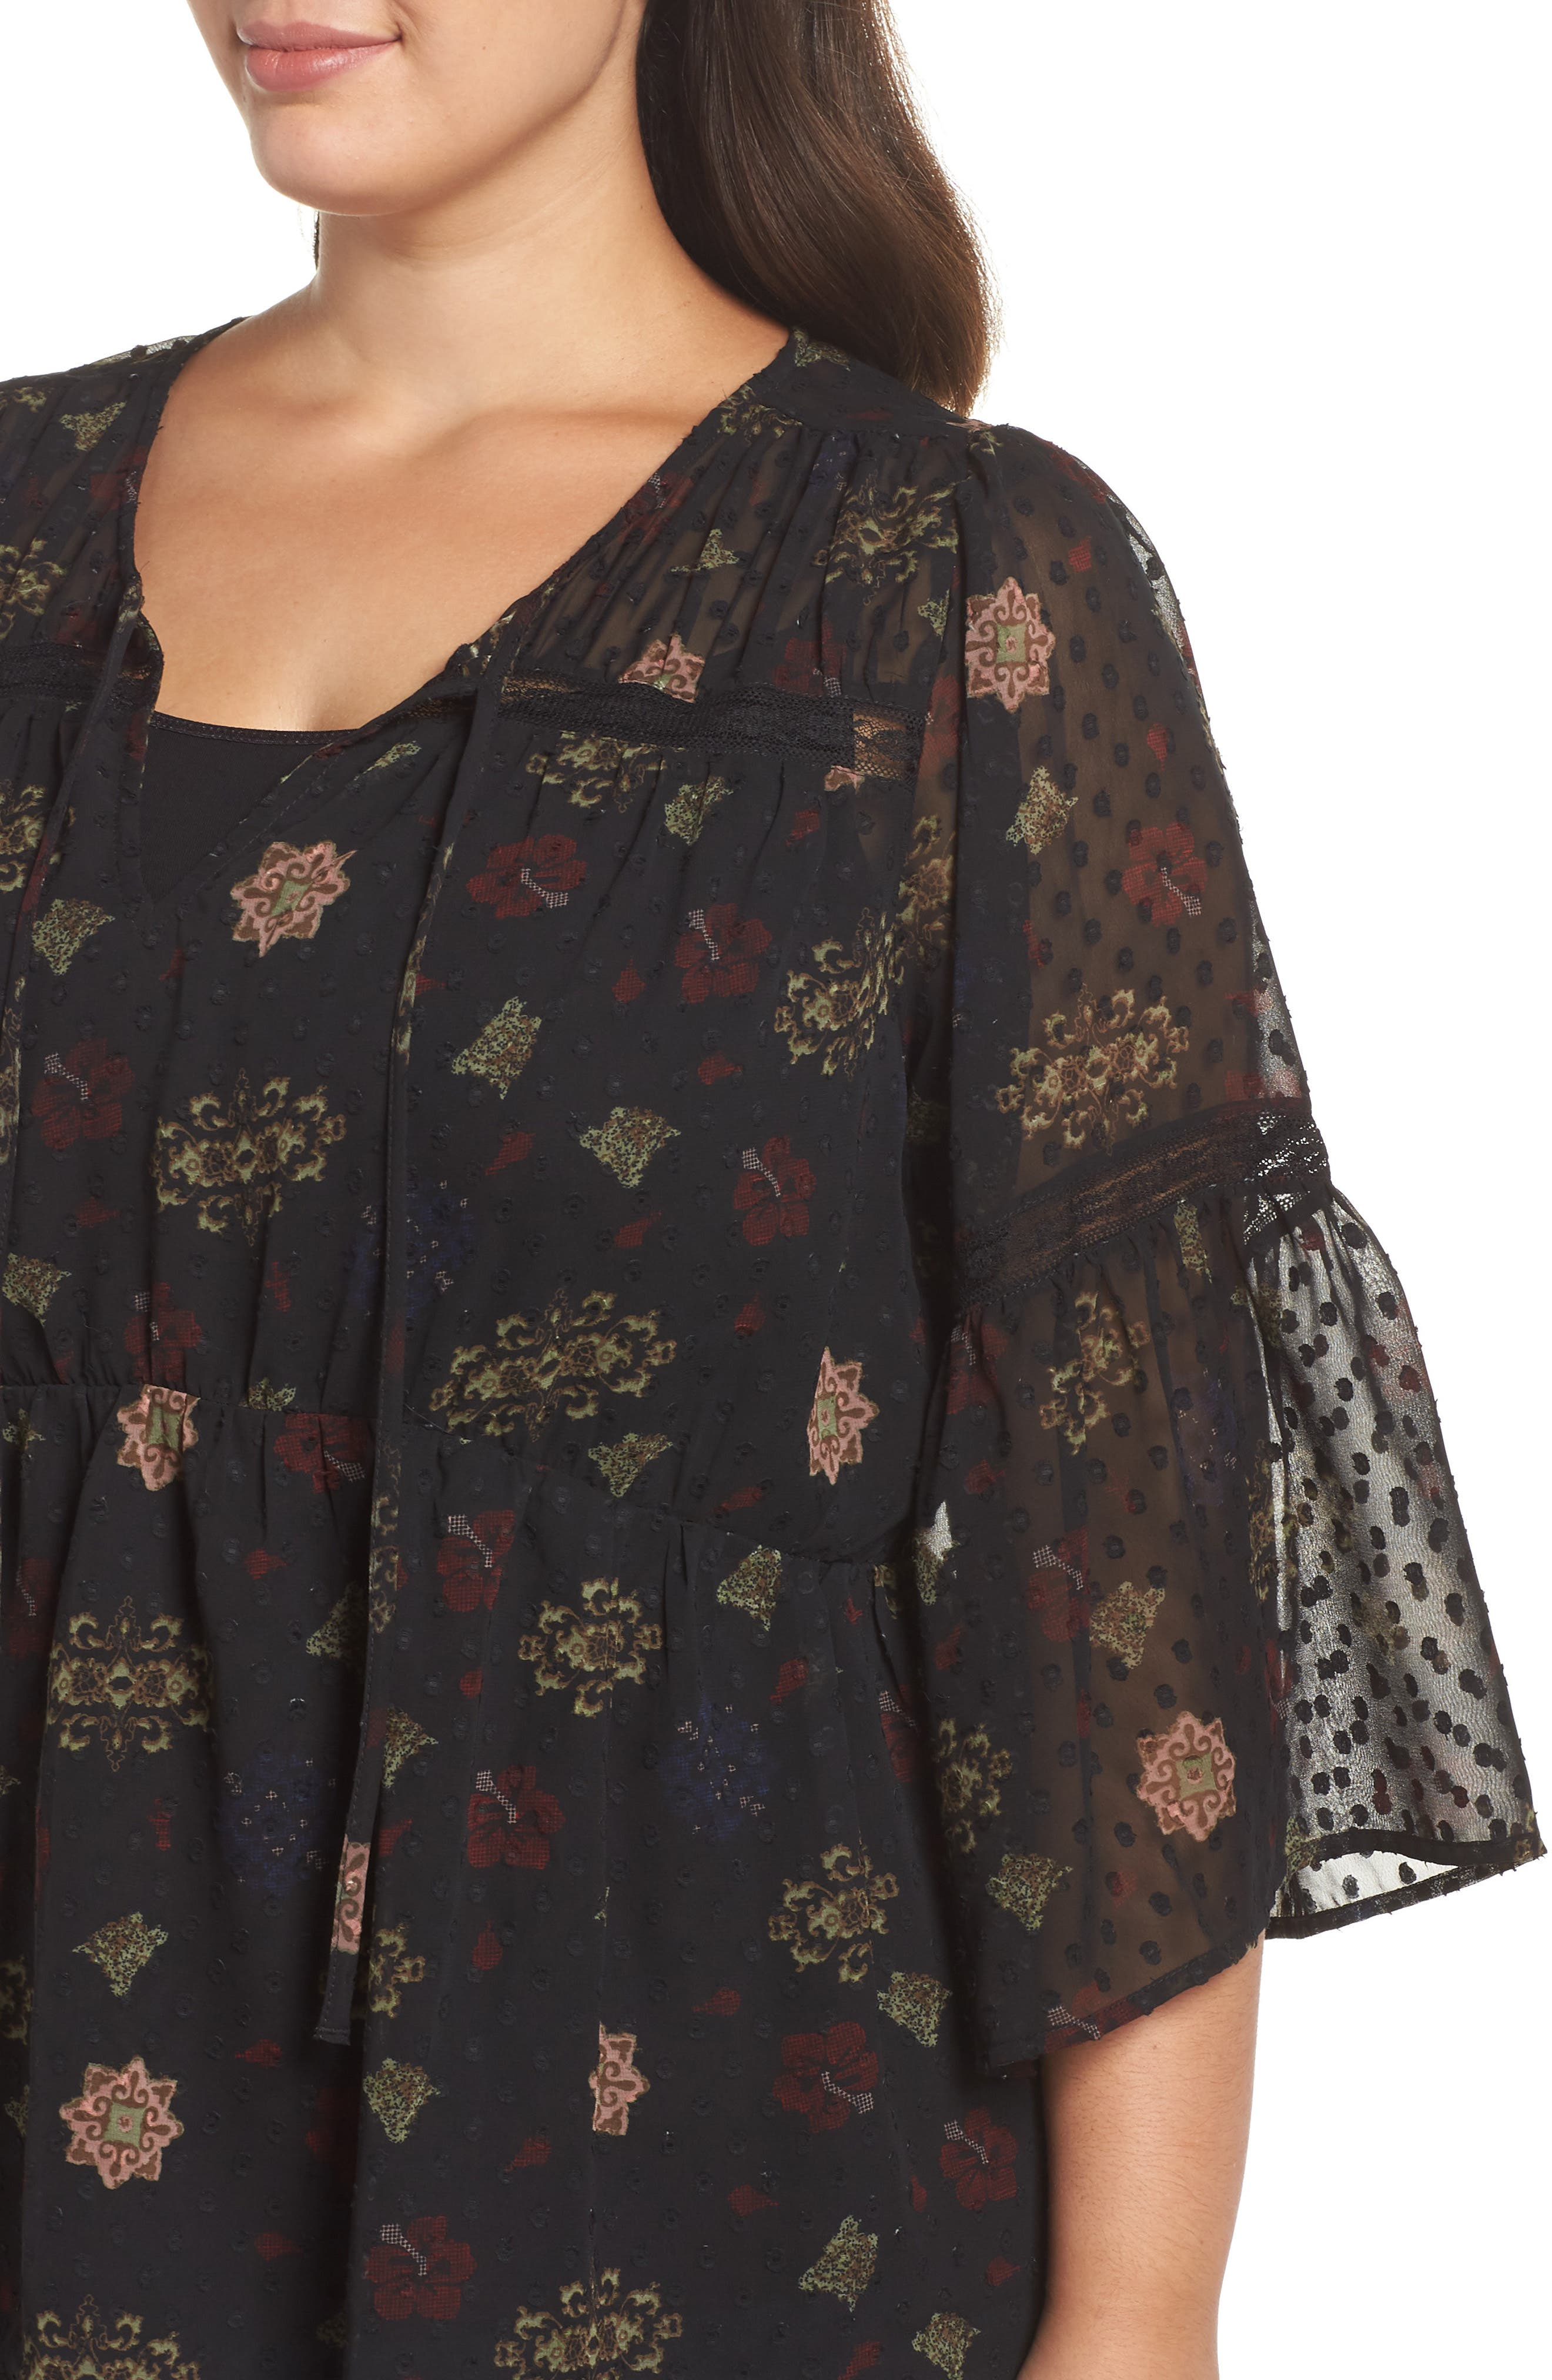 Swiss Dot Floral Top,                             Alternate thumbnail 4, color,                             BLACK MULTI